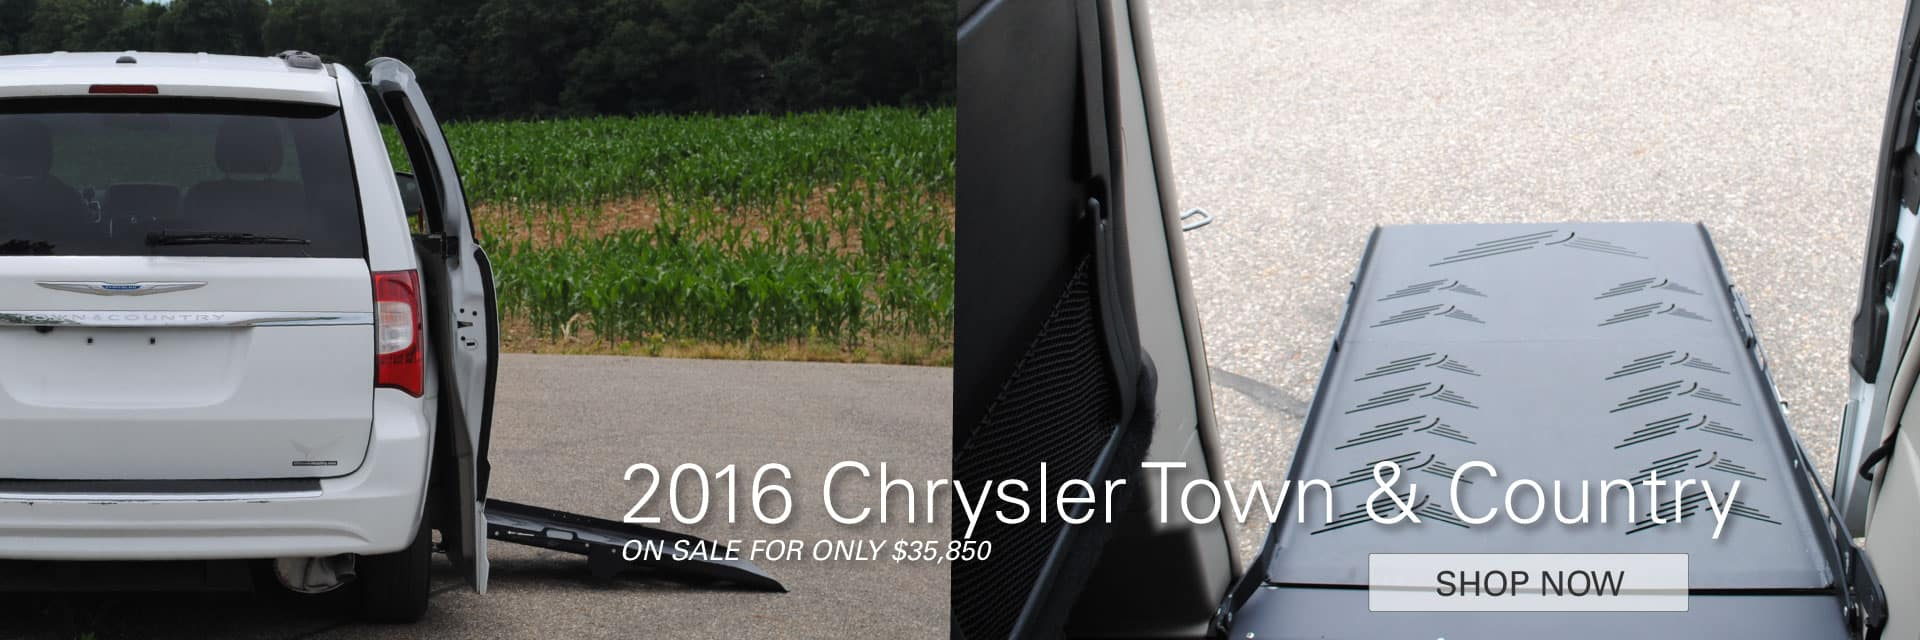 2016 Chrysler Town & Country On Sale For Only $ 35,850